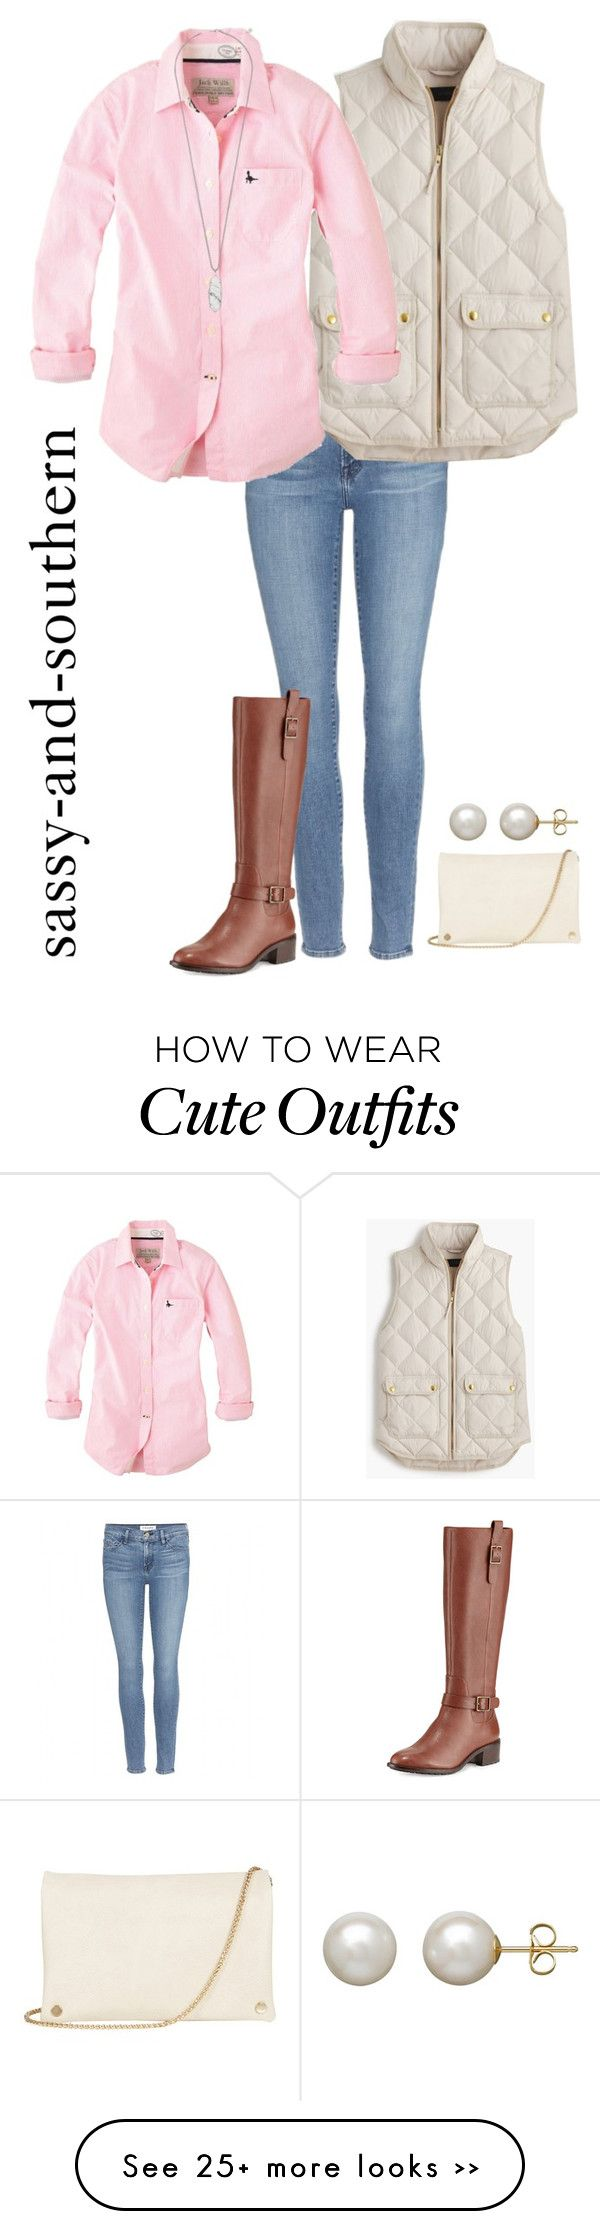 """cute fall outfit"" by sassy-and-southern on Polyvore featuring Frame Denim, J.Crew, Jack Wills, Cole Haan, Kendra Scott, Honora and Oasis"